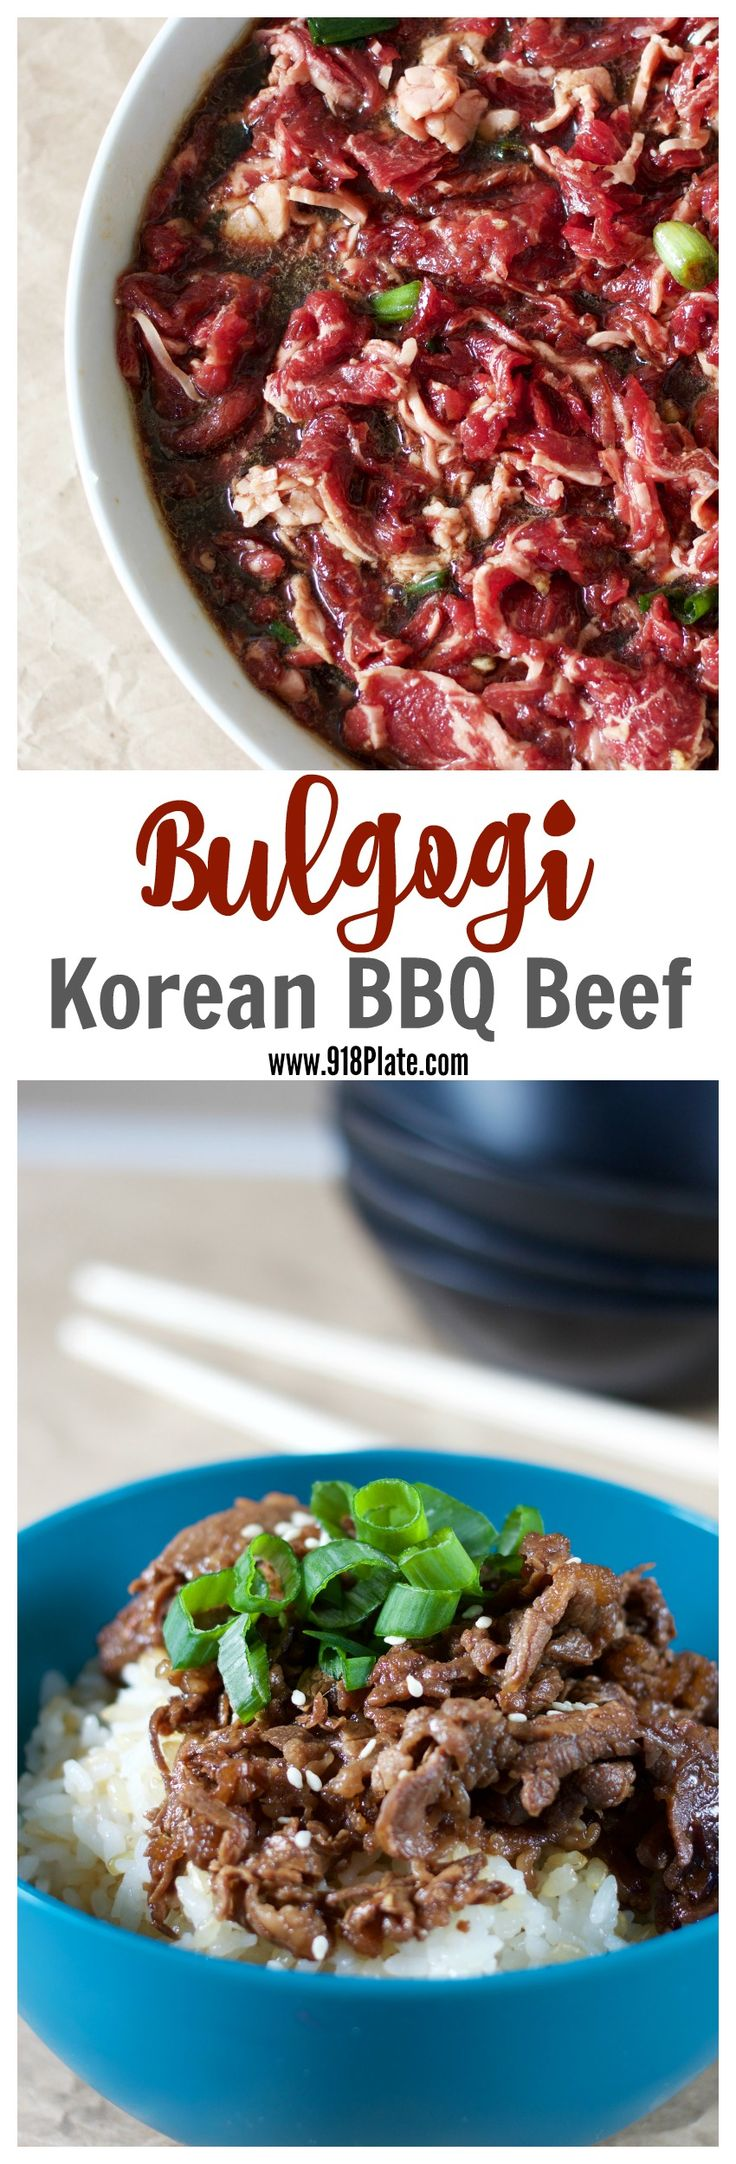 Korean BBQ beef is sweet, fast and easy to make with a 6-ingredient marinade!(Fast Easy Meal 3 Ingredients)